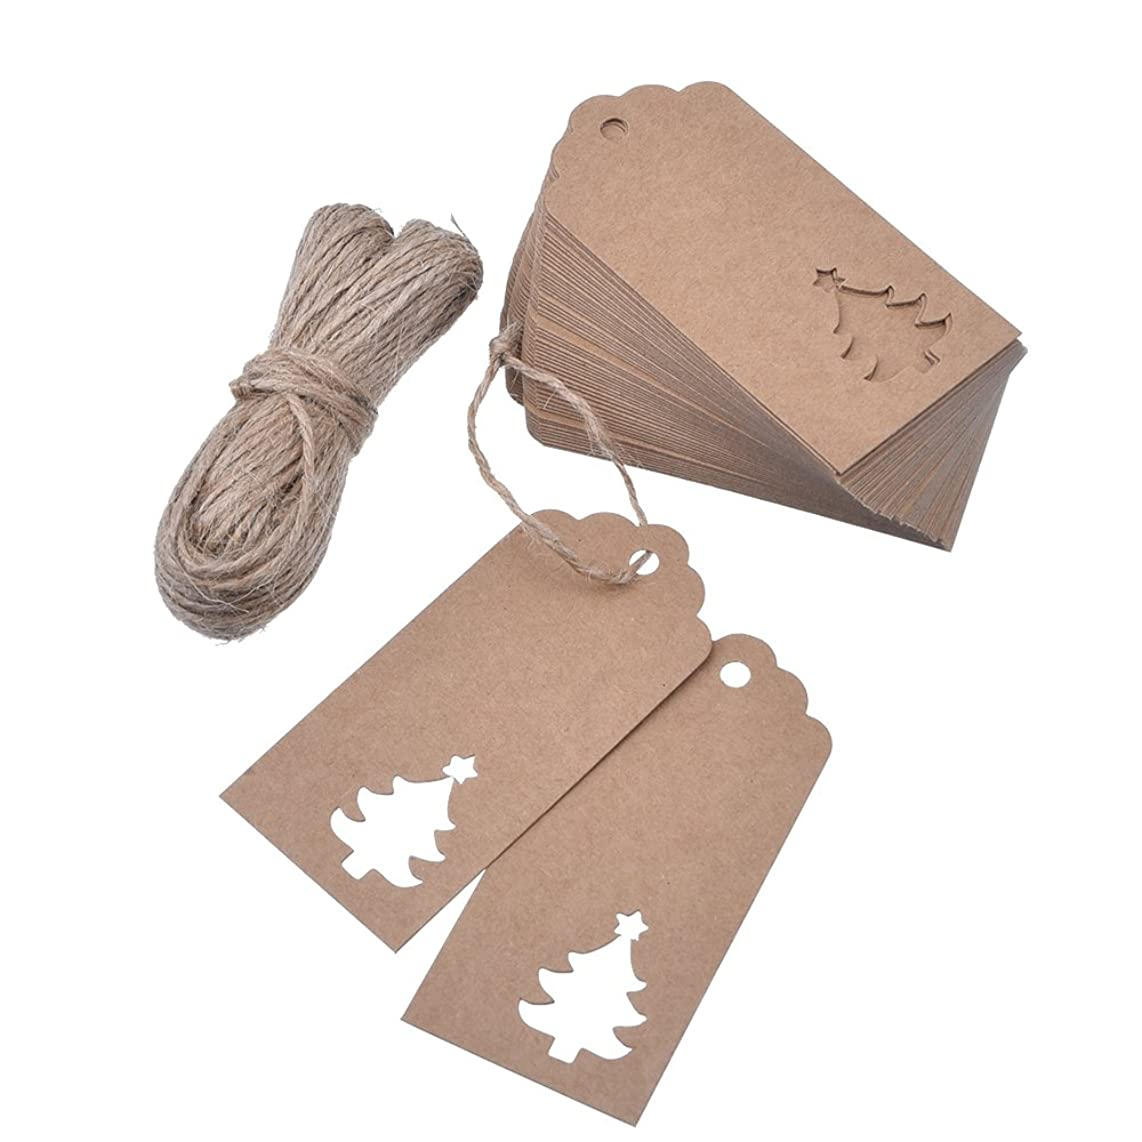 Outus 100 Pieces Kraft Paper Gift Tags Hollow Christmas Tree Design with 66 Feet Twines for Wedding Favor Christmas (Brown)